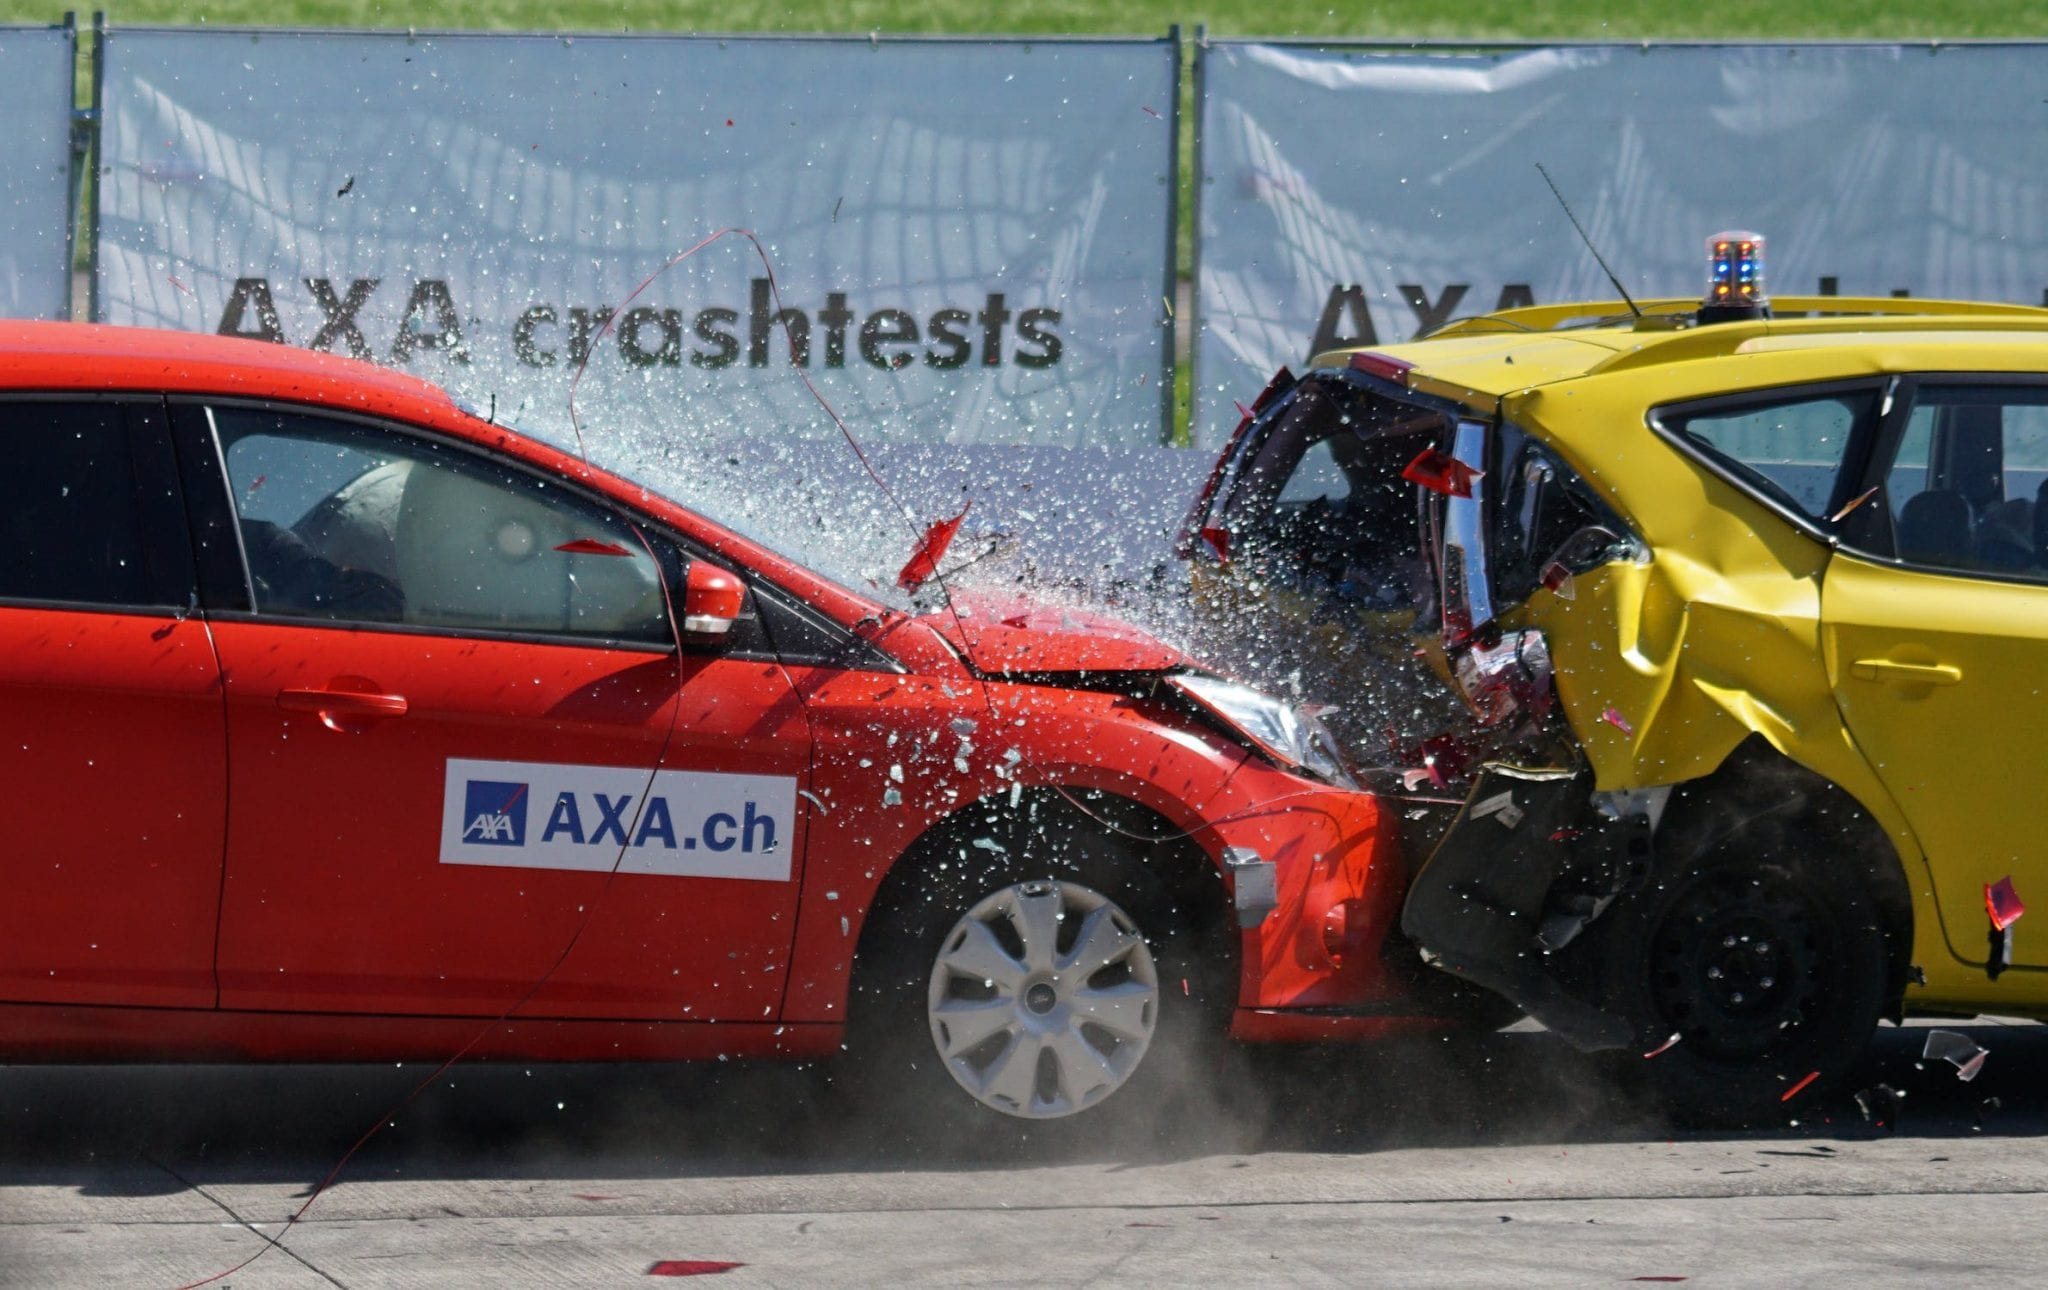 Red car crashing into the back of a yellow car